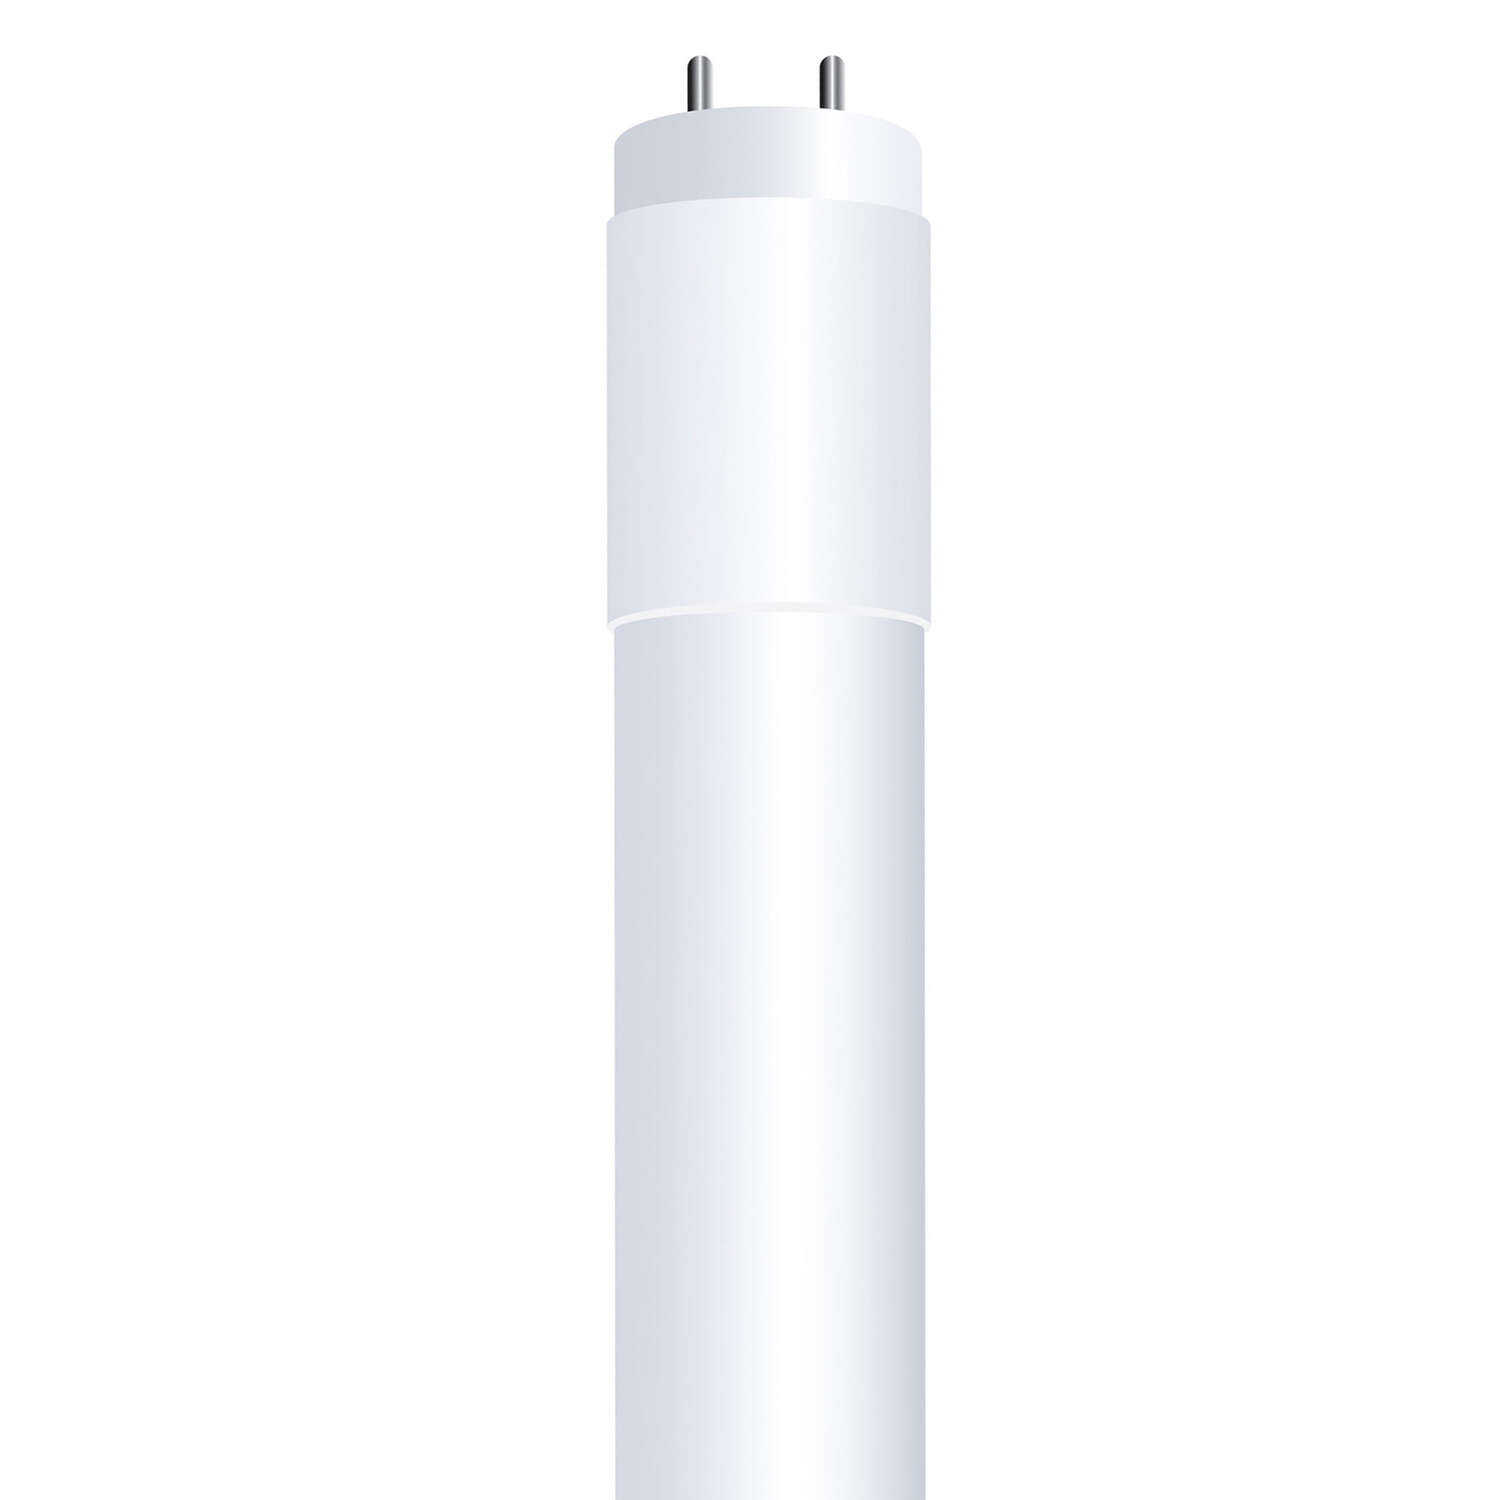 FEIT Electric  Plug and Play  10 watts Linear  LED Bulb  700 lumens Cool White  Linear  60 Watt Equi